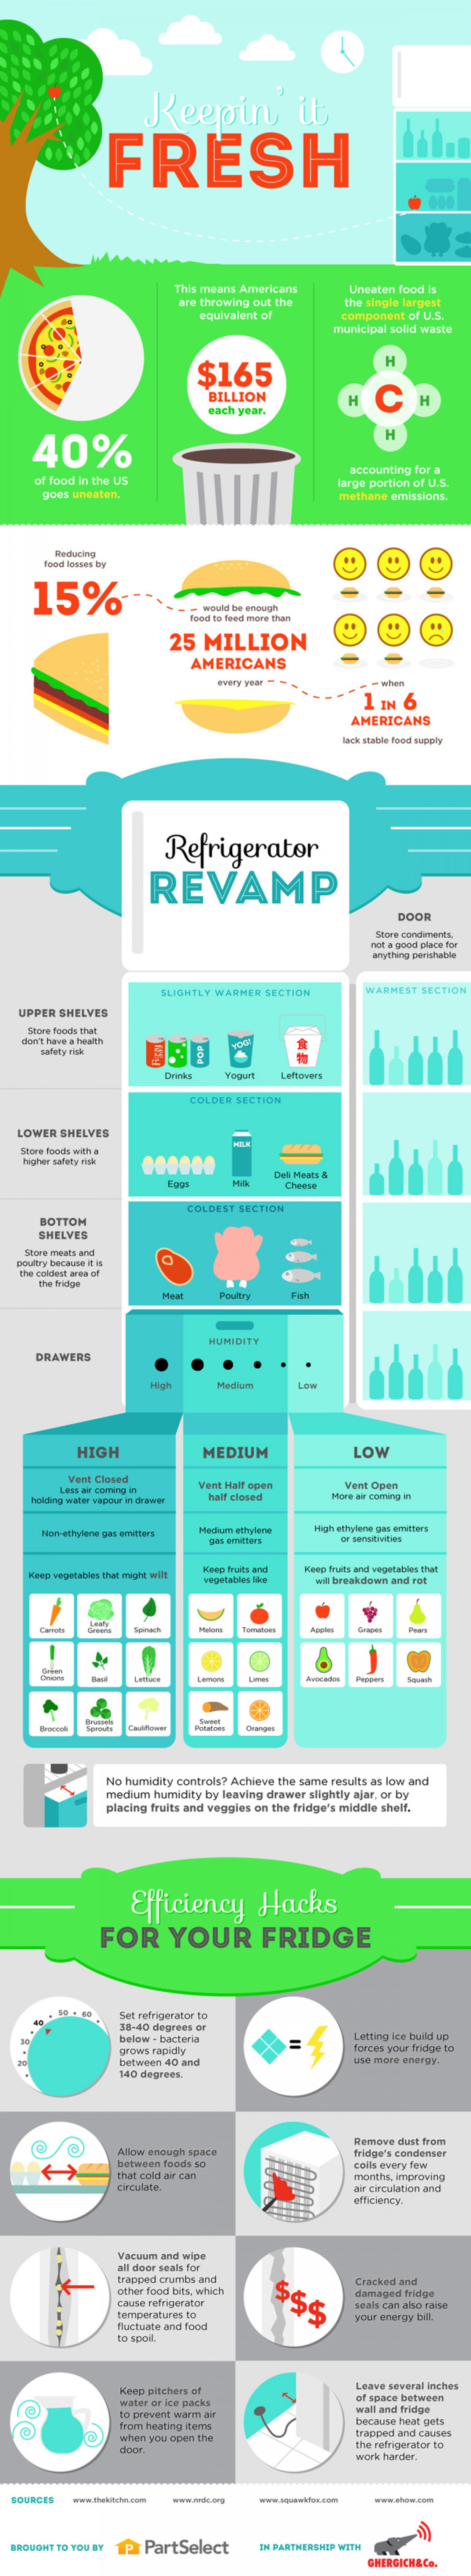 Keepin' it Fresh Infographic